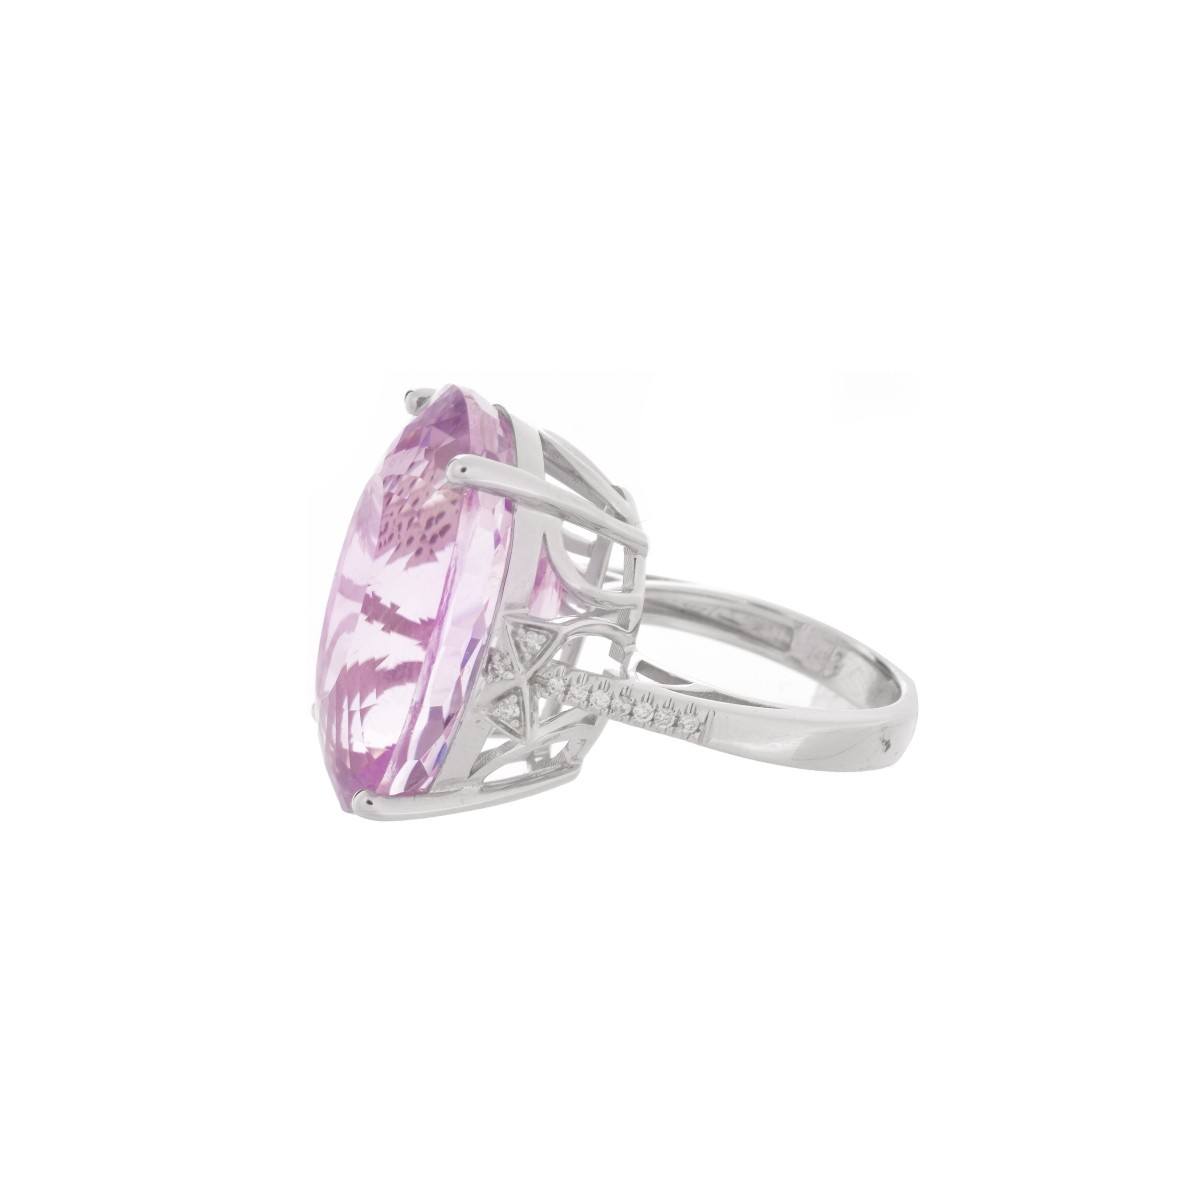 Kunzite, Diamond and 14K Ring